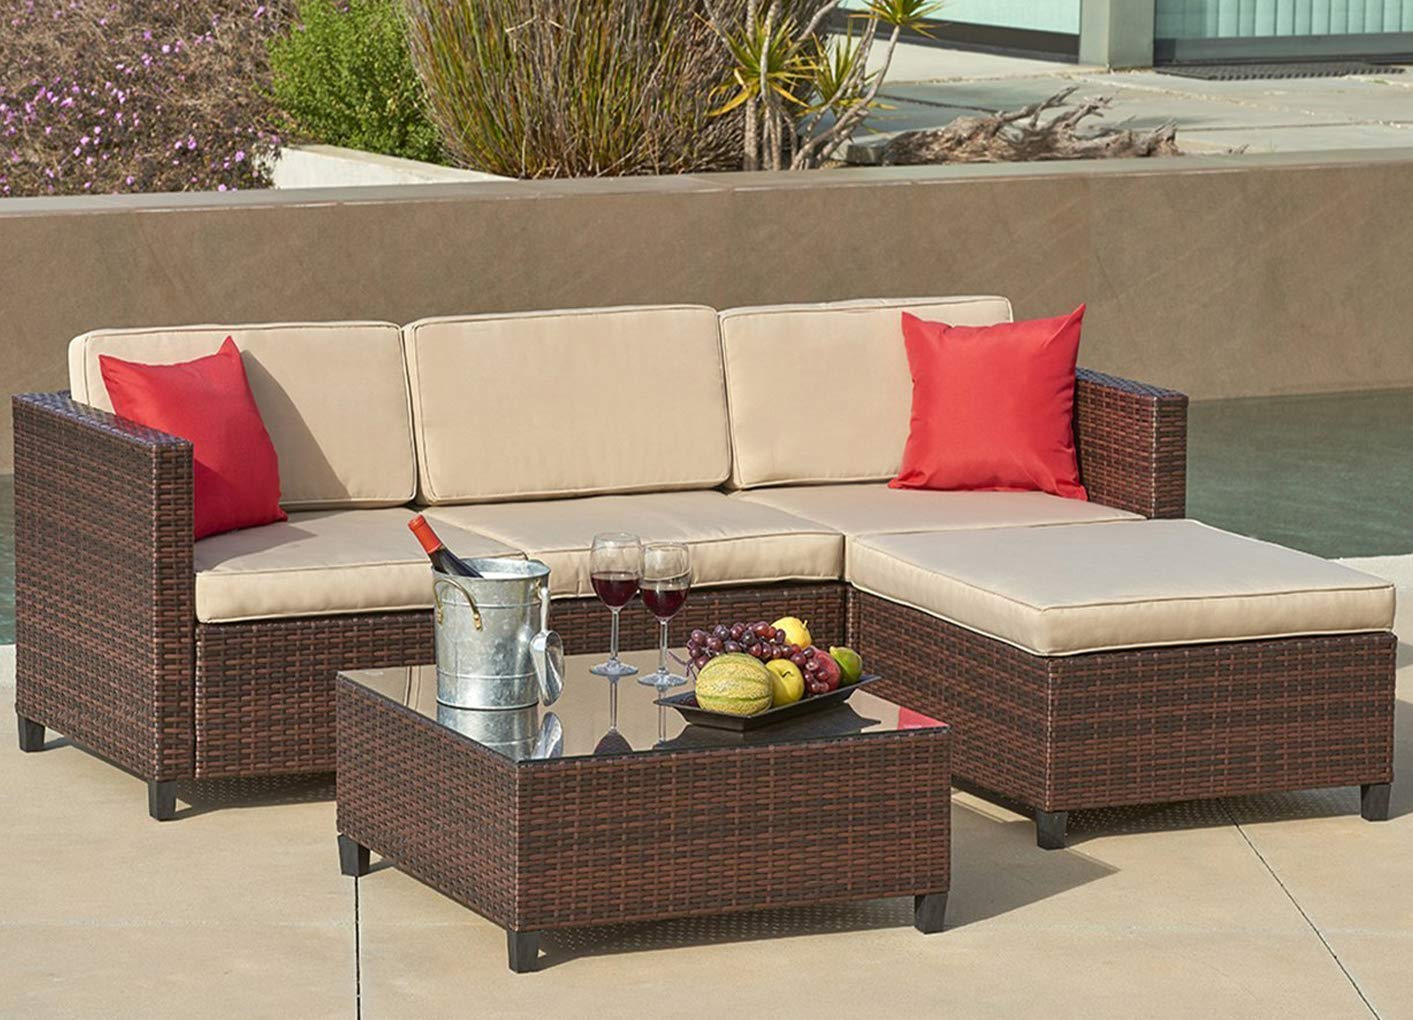 Suncrown Outdoor Furniture Sectional Sofa (5 Piece Set) All Weather Brown  Checkered